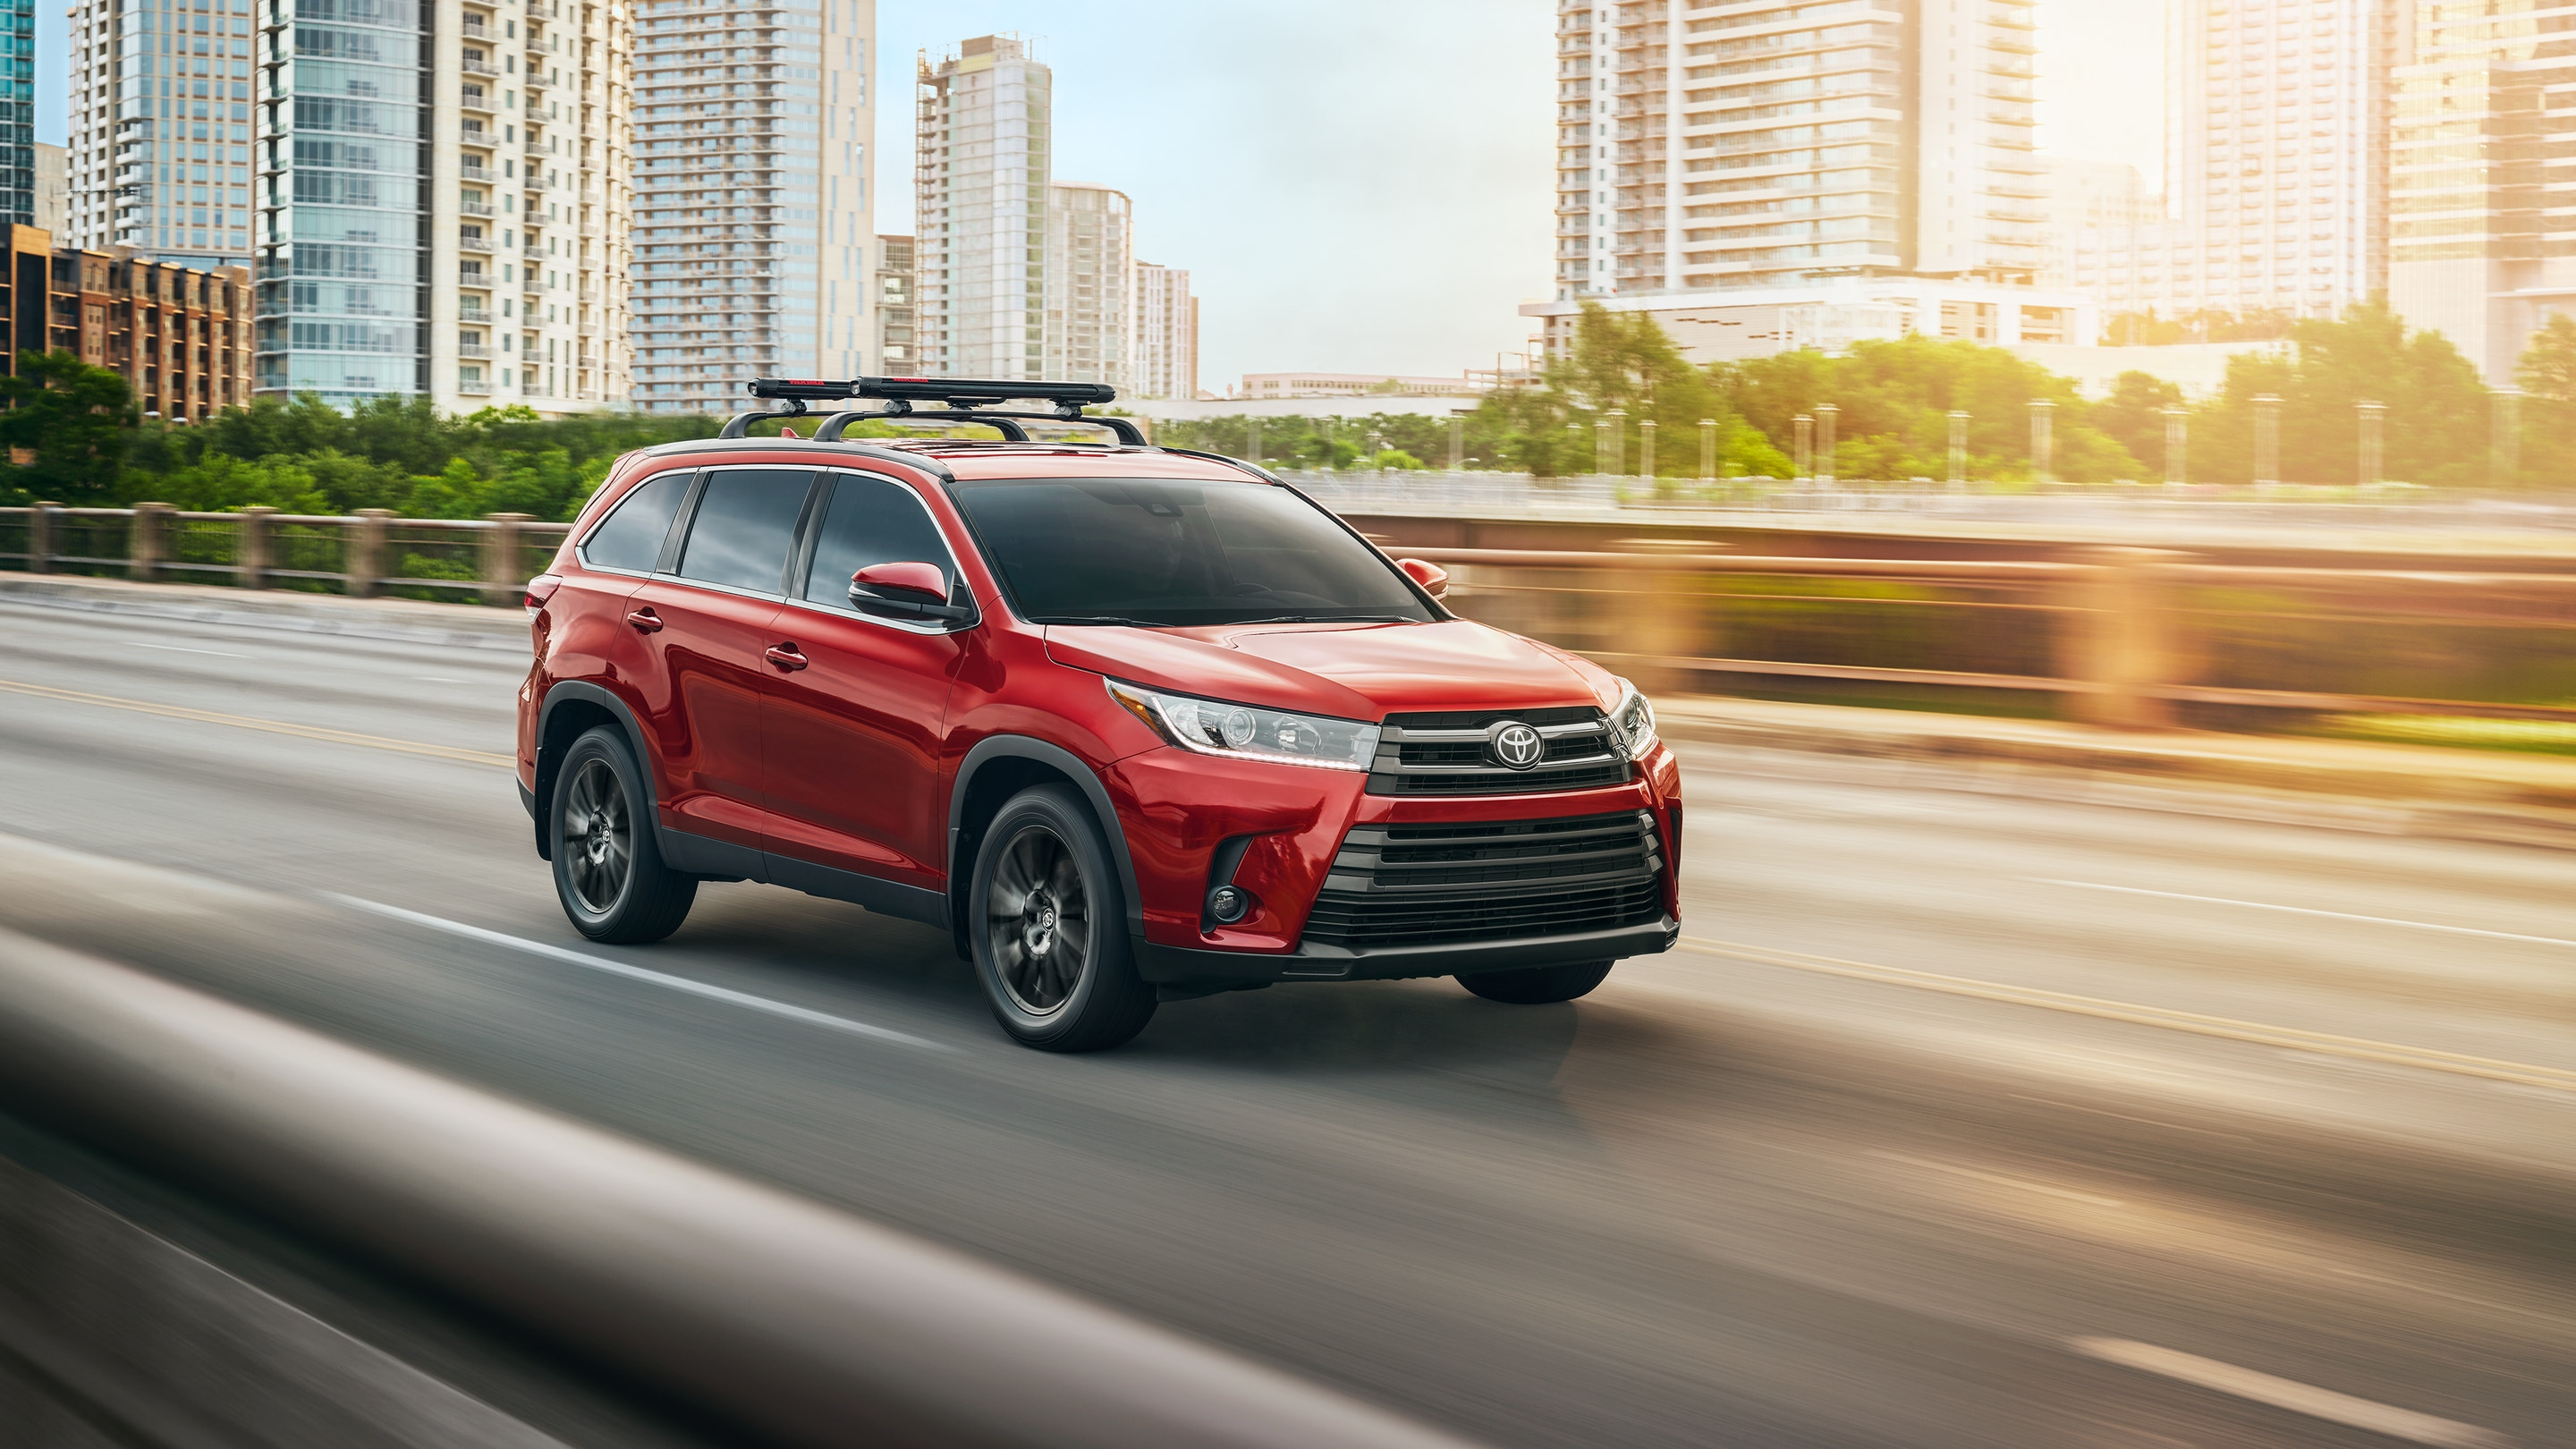 2019 Toyota Highlander for Sale near Elmhurst, IL